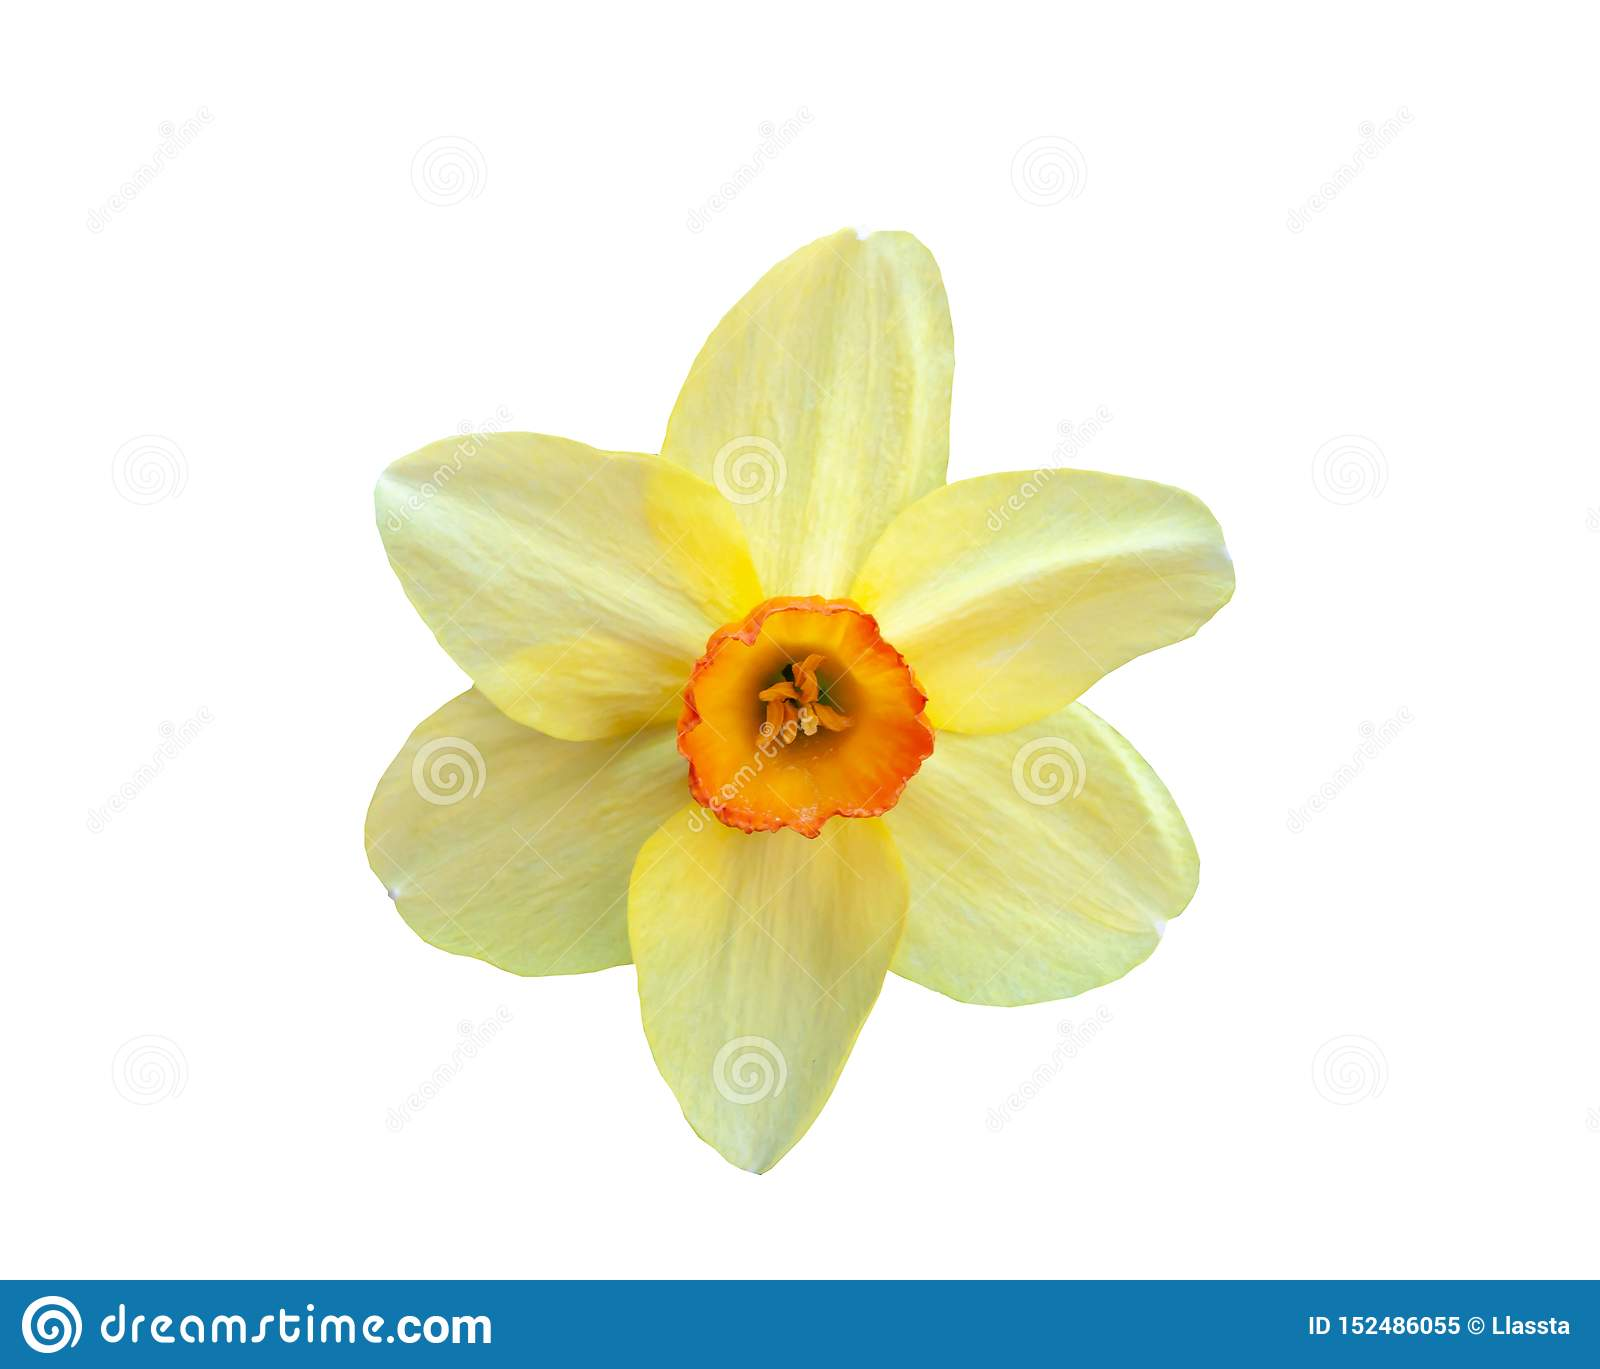 Beautiful flower yellow narcissus isolated on white background